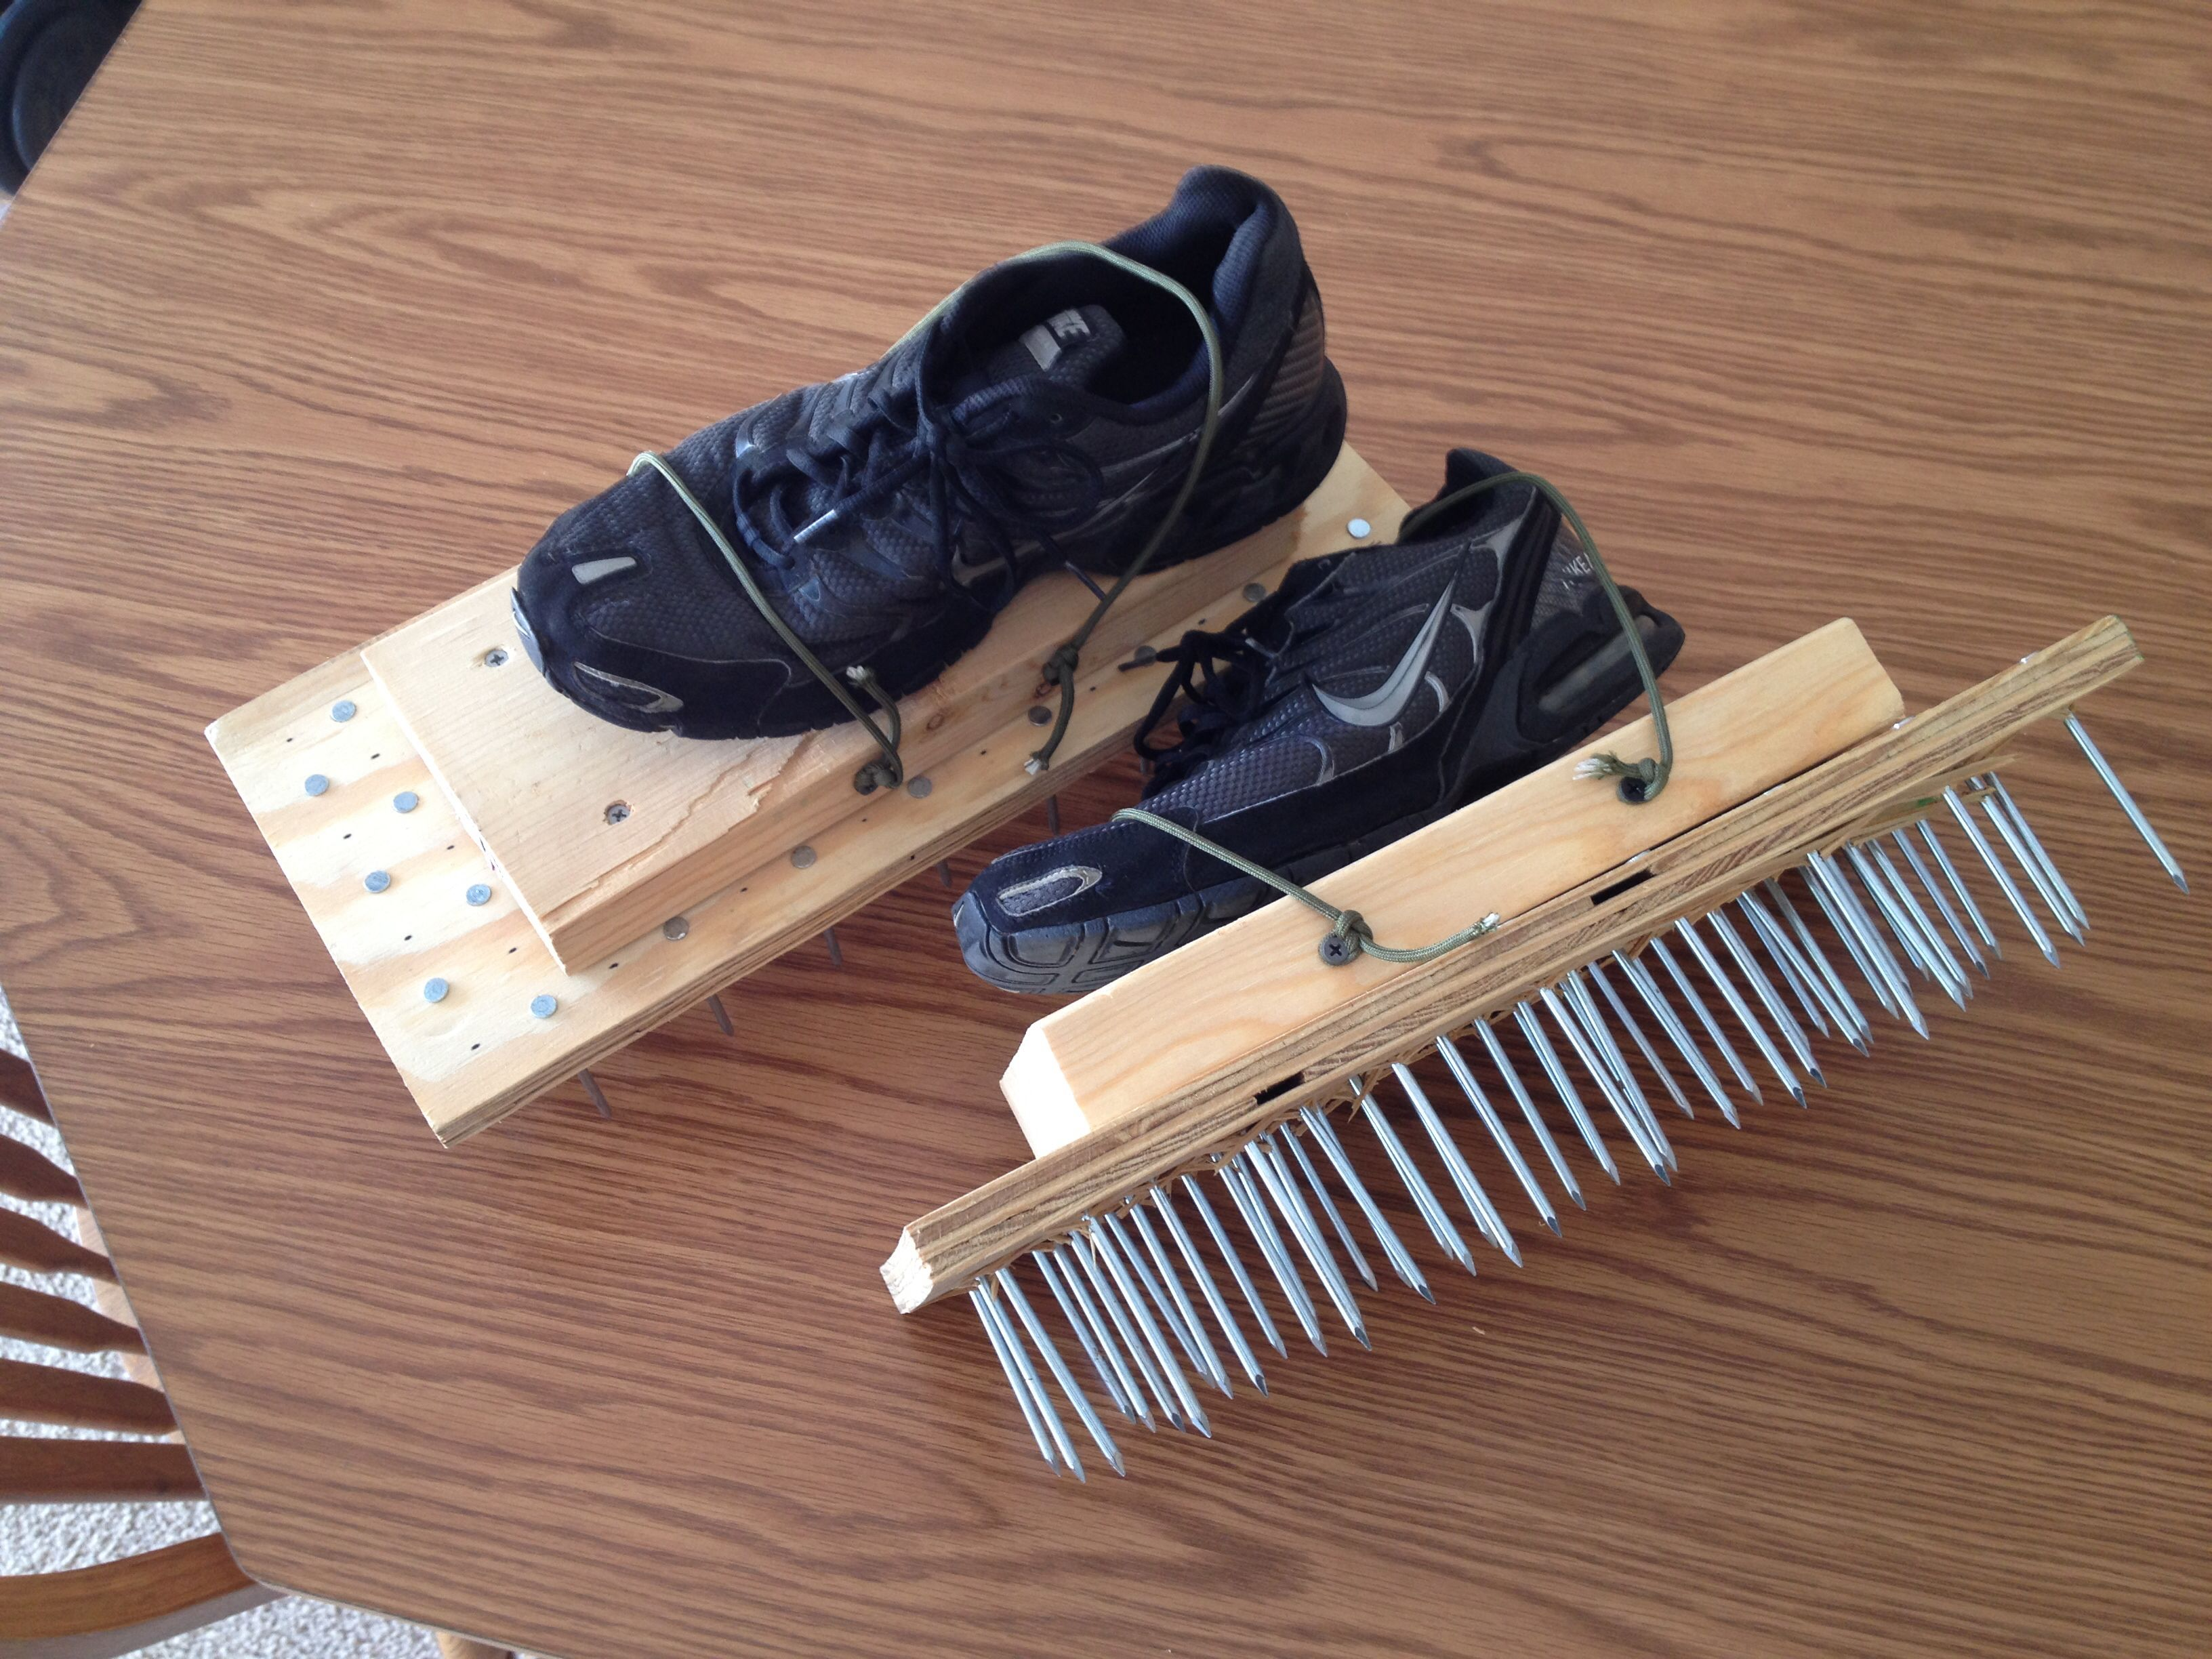 Homemade Lawn Aerator Shoes With